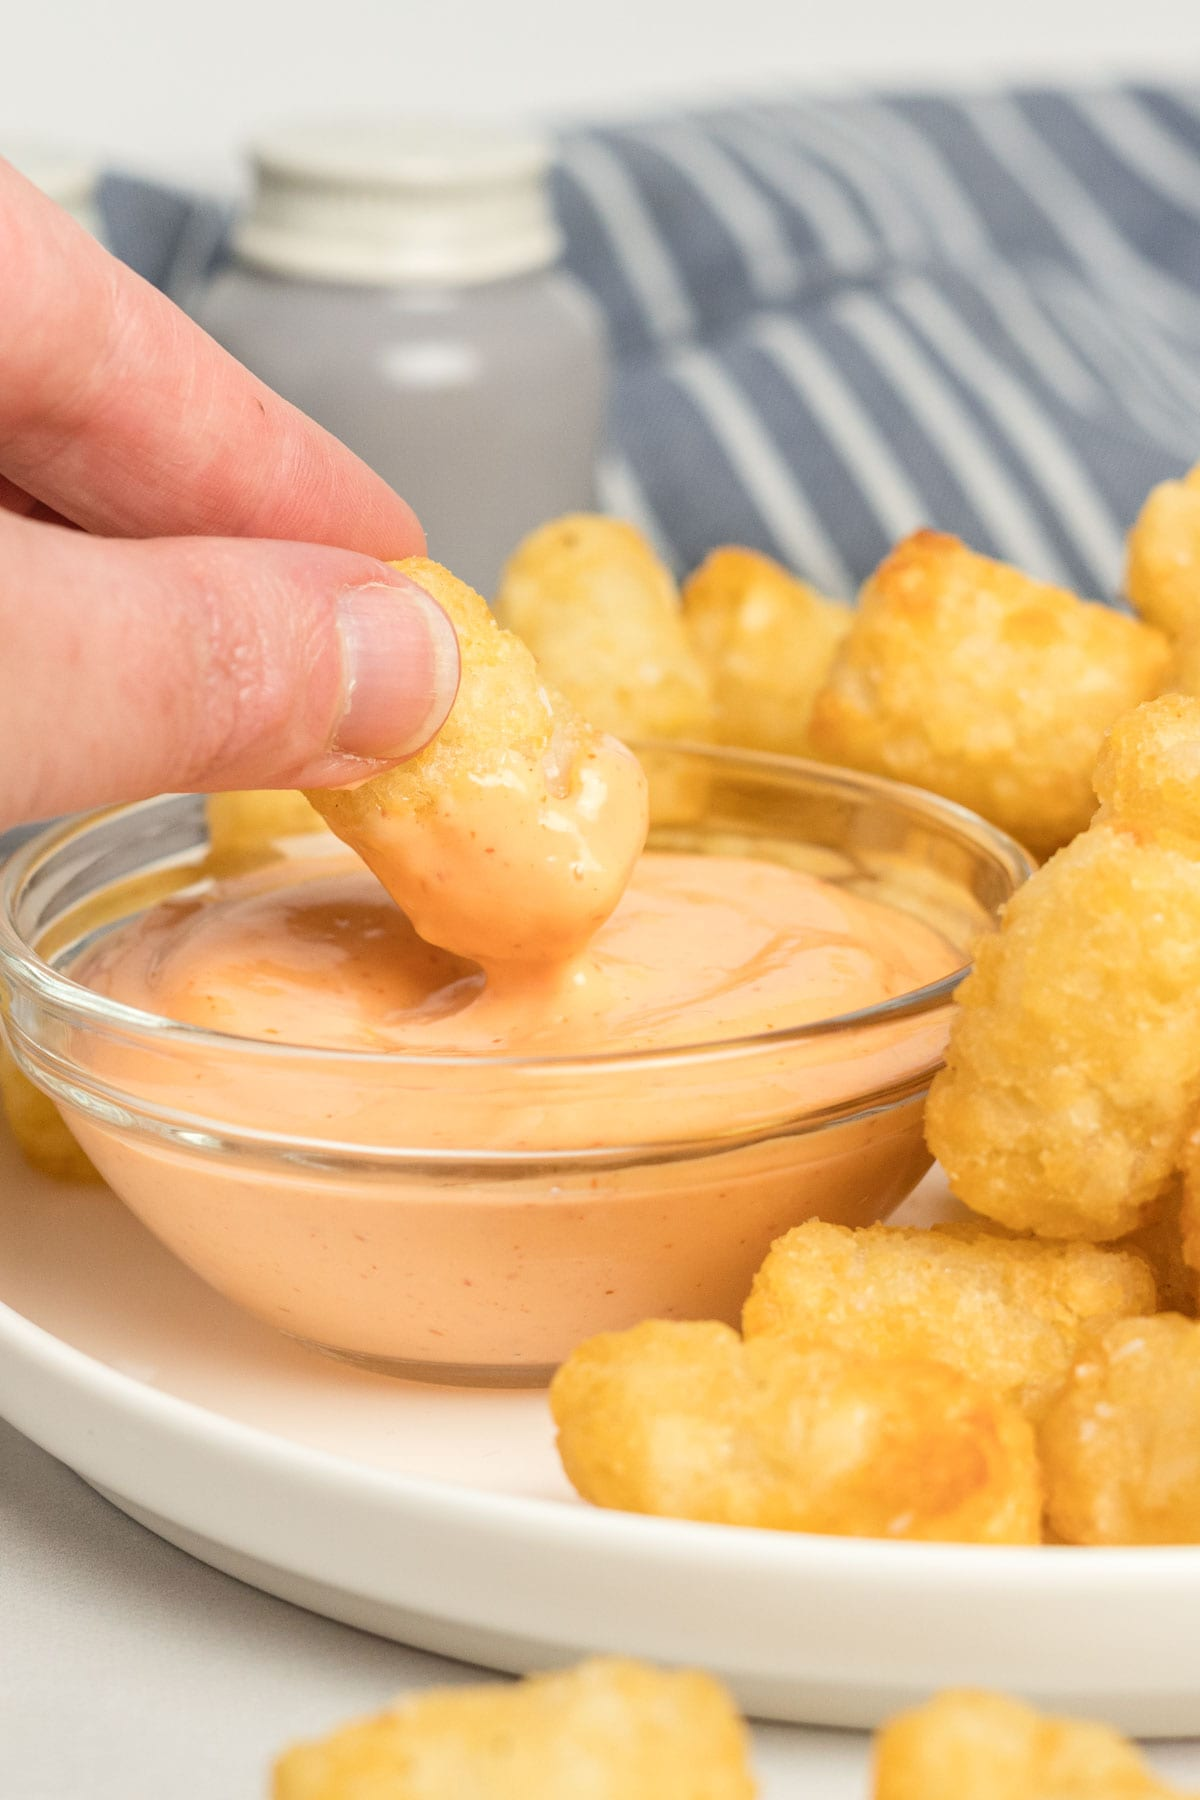 Tater tot being dipped in spicy mayo.